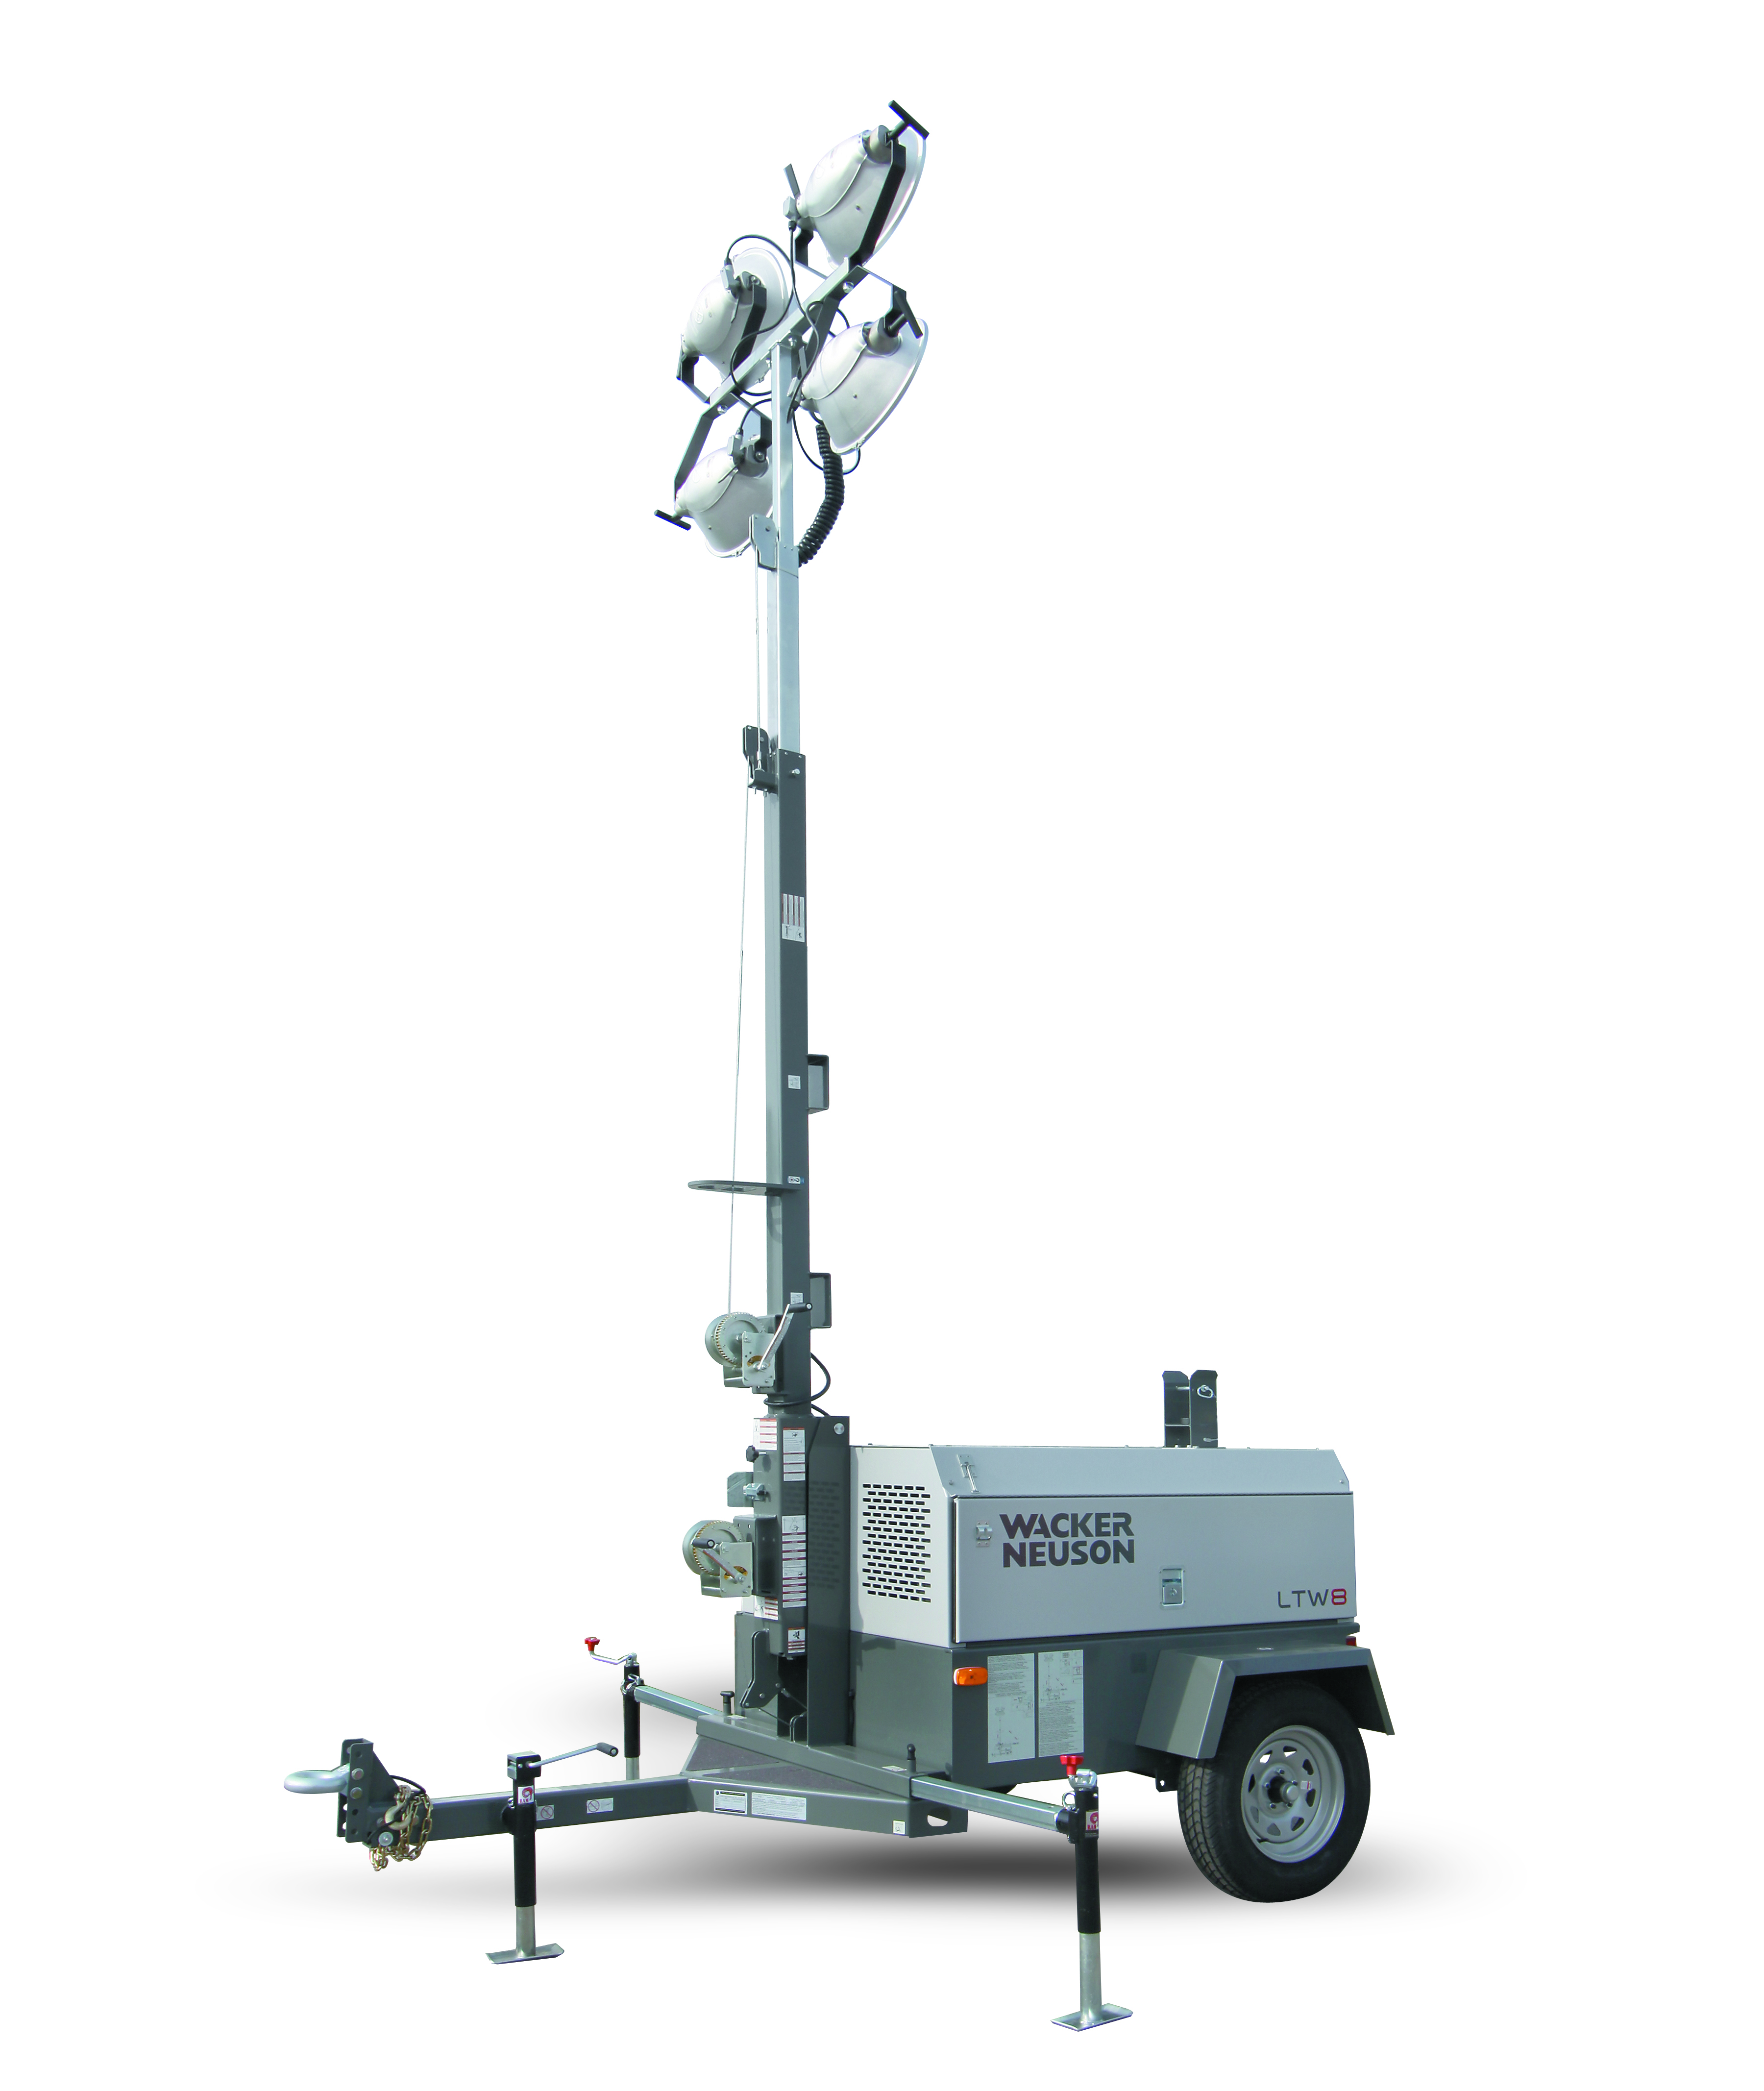 Towable Light Tower with 8 15kW Generator for Rent United Rentals